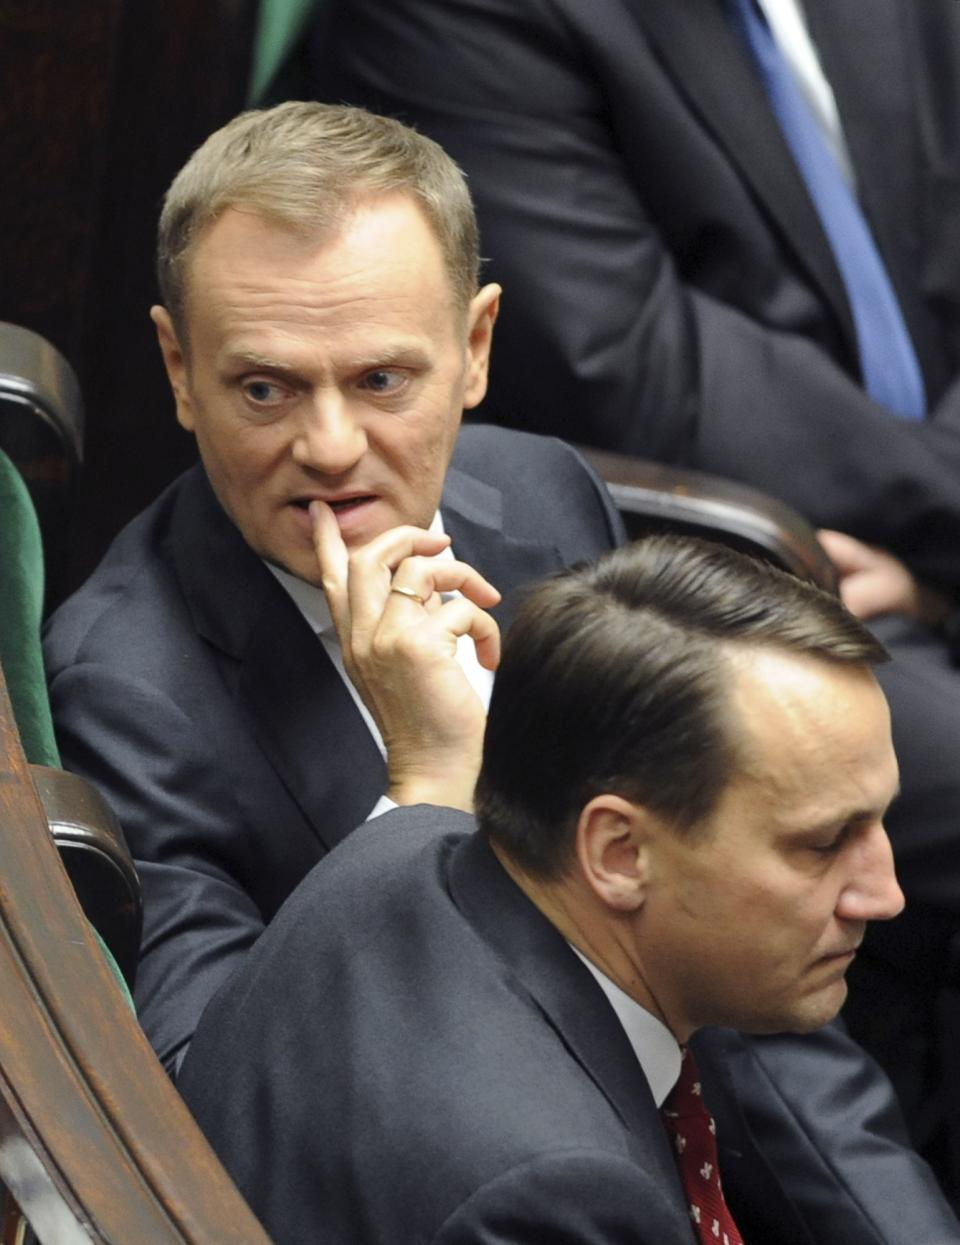 Polish Prime Minister Donald Tusk, left,  looks back as he sits next to Foreign Minister Radek Sikorski during the first session of the new Polish Parliament, in Warsaw, Poland, Tuesday, Nov. 8, 2011. (AP Photo/Alik Keplicz)